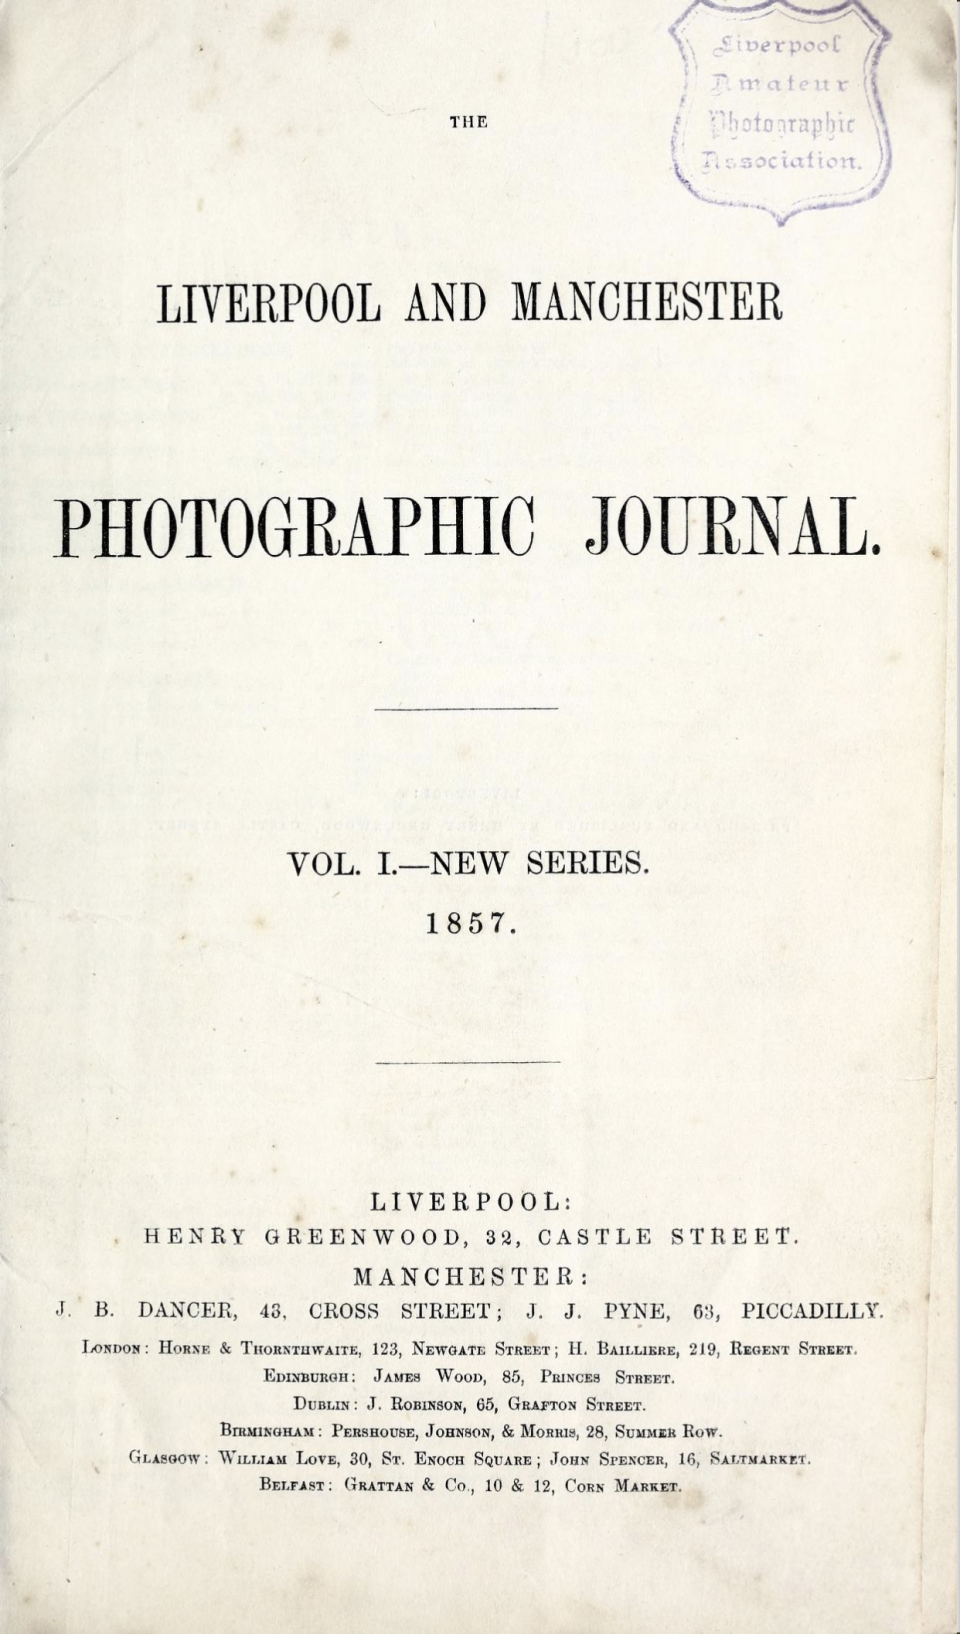 Title page from 'The Albumen Process,' from The Liverpool and Manchester Photographic Journal, Vol. 1, 1857